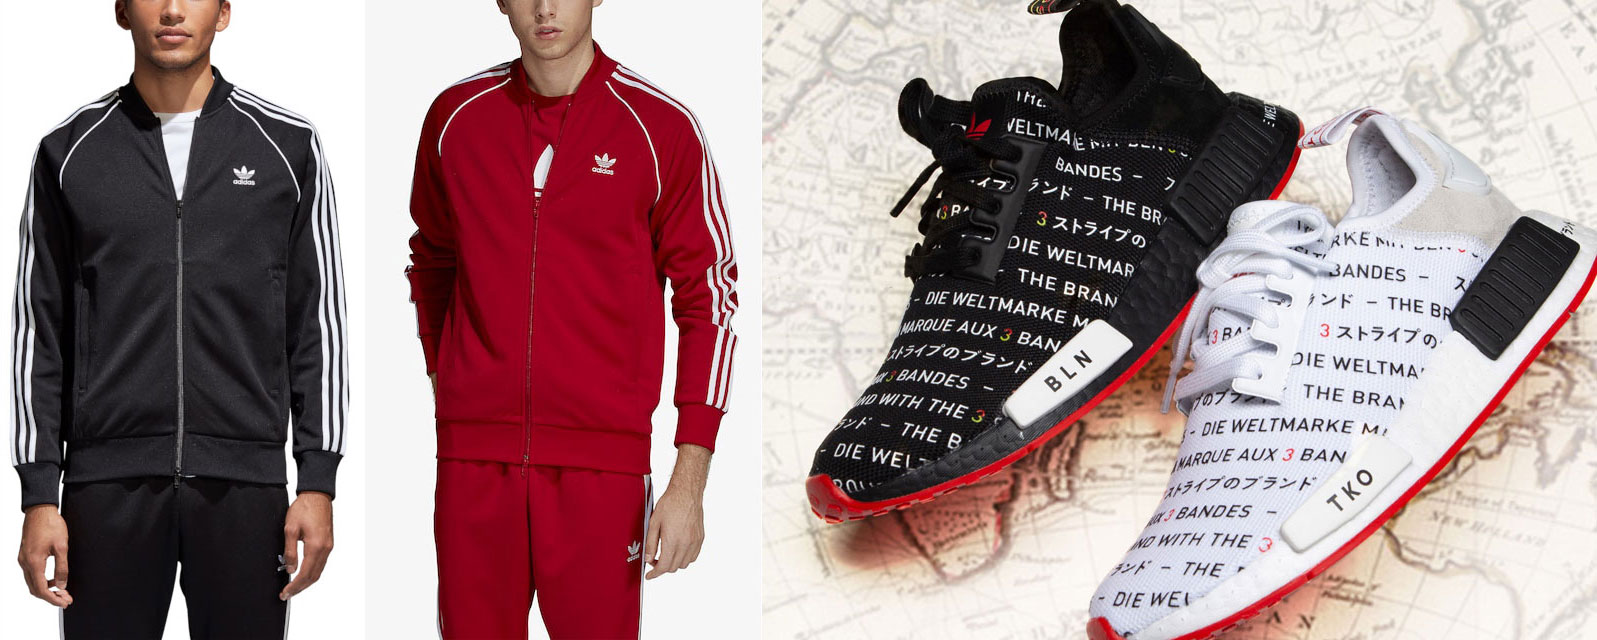 adidas-nmd-passport-track-suit-outfit